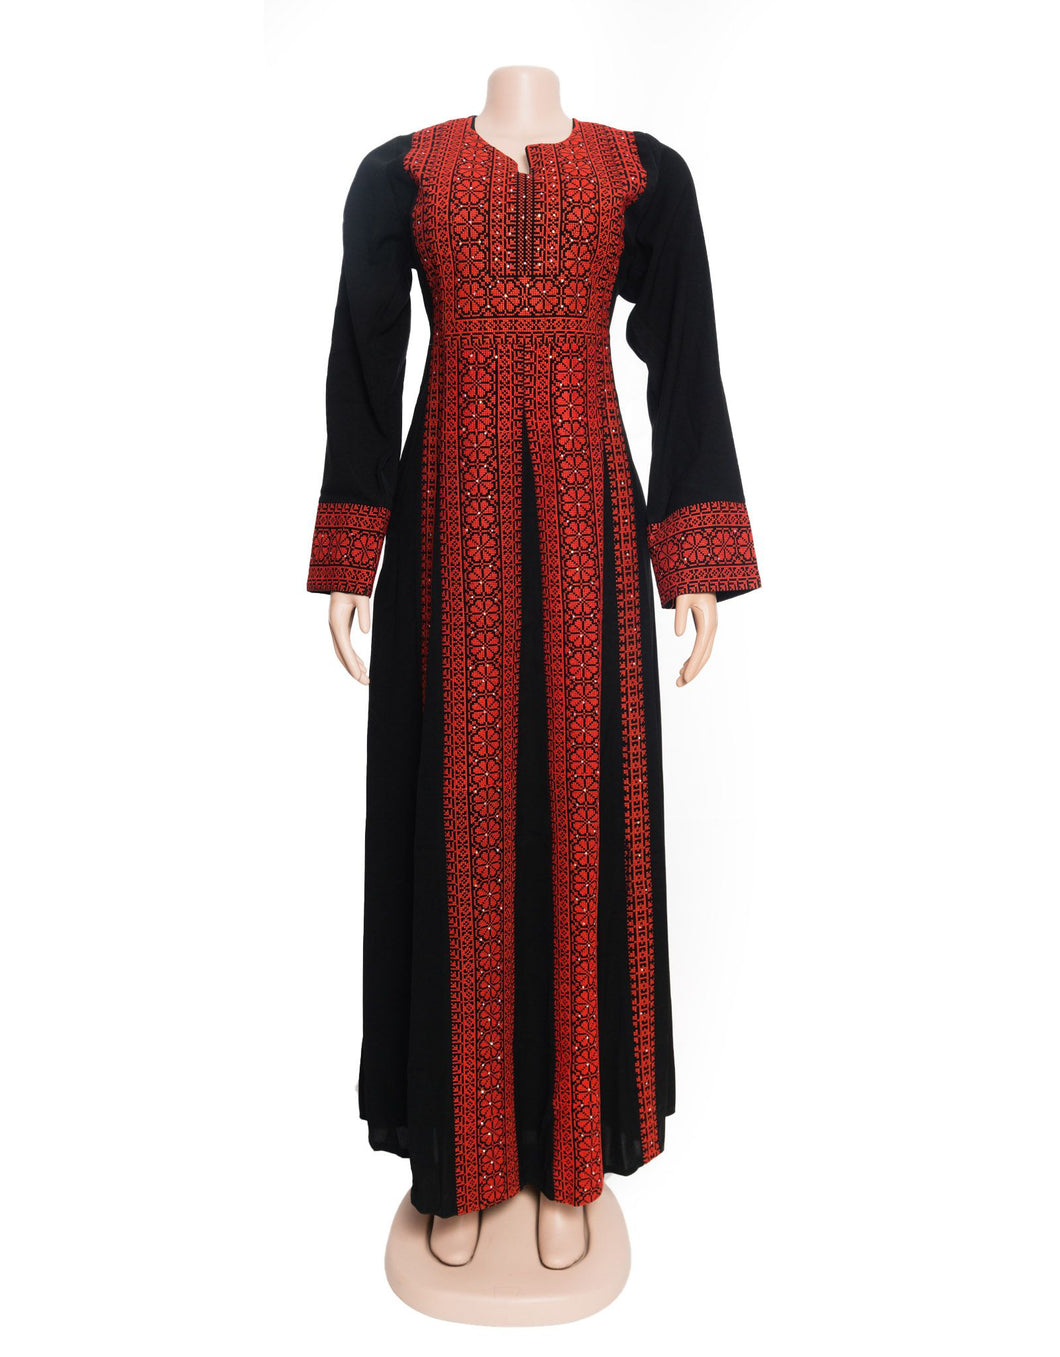 The Palestinian Asala dress - Black and red Palestinian embroidered dress